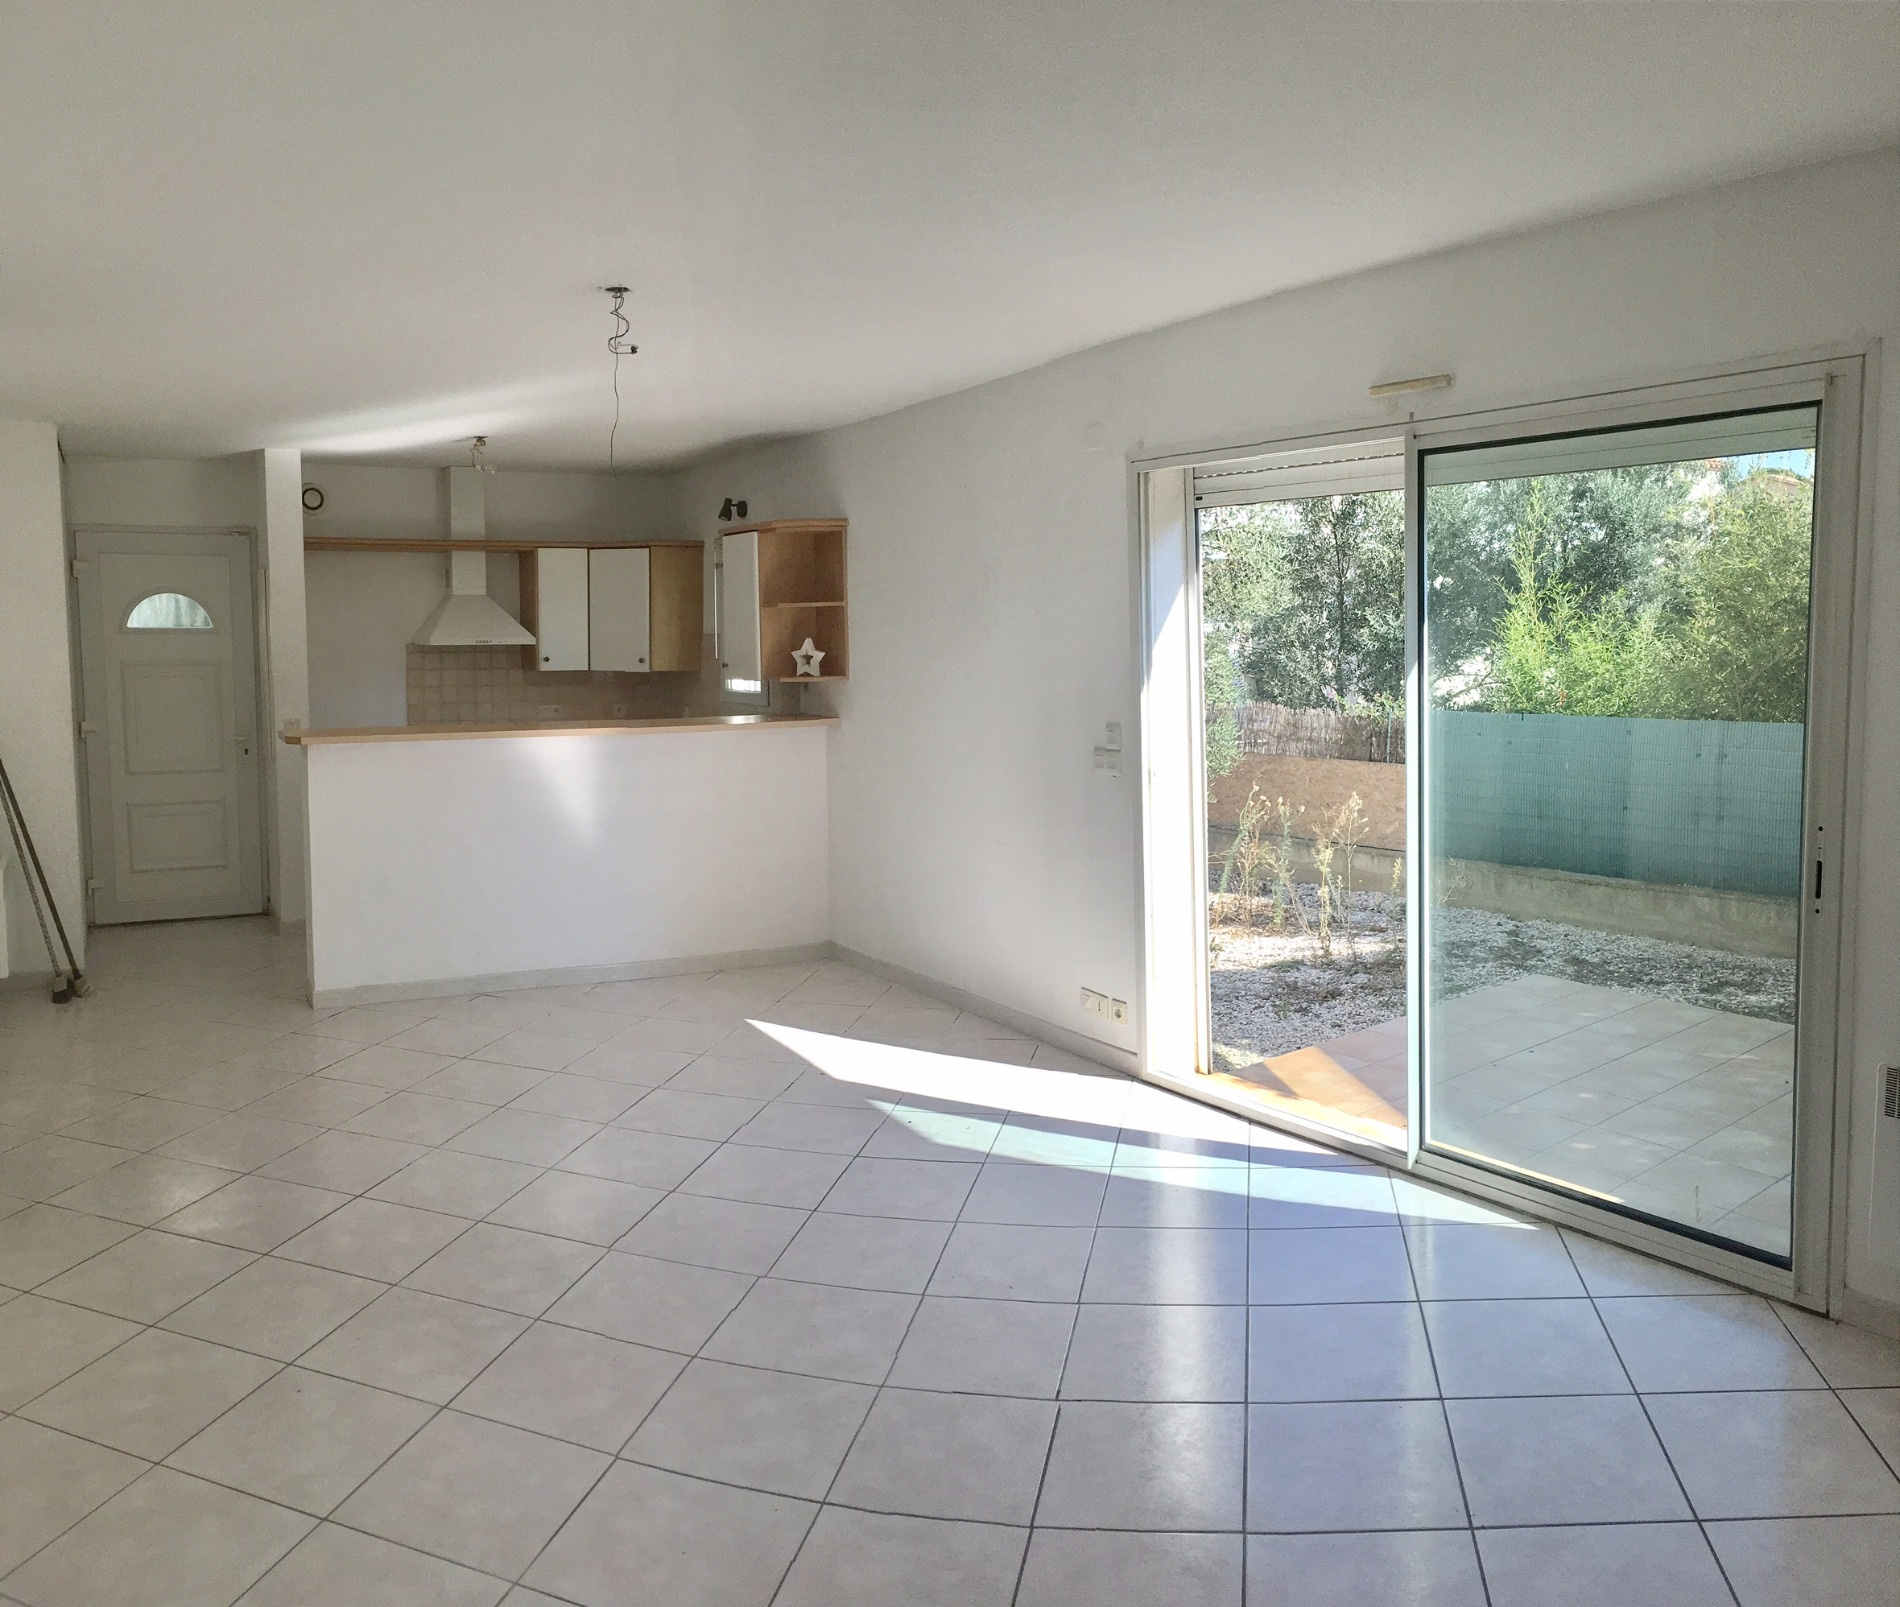 Vente appartement t3 rdc jardin perpignan sud for Vente appartement rdc